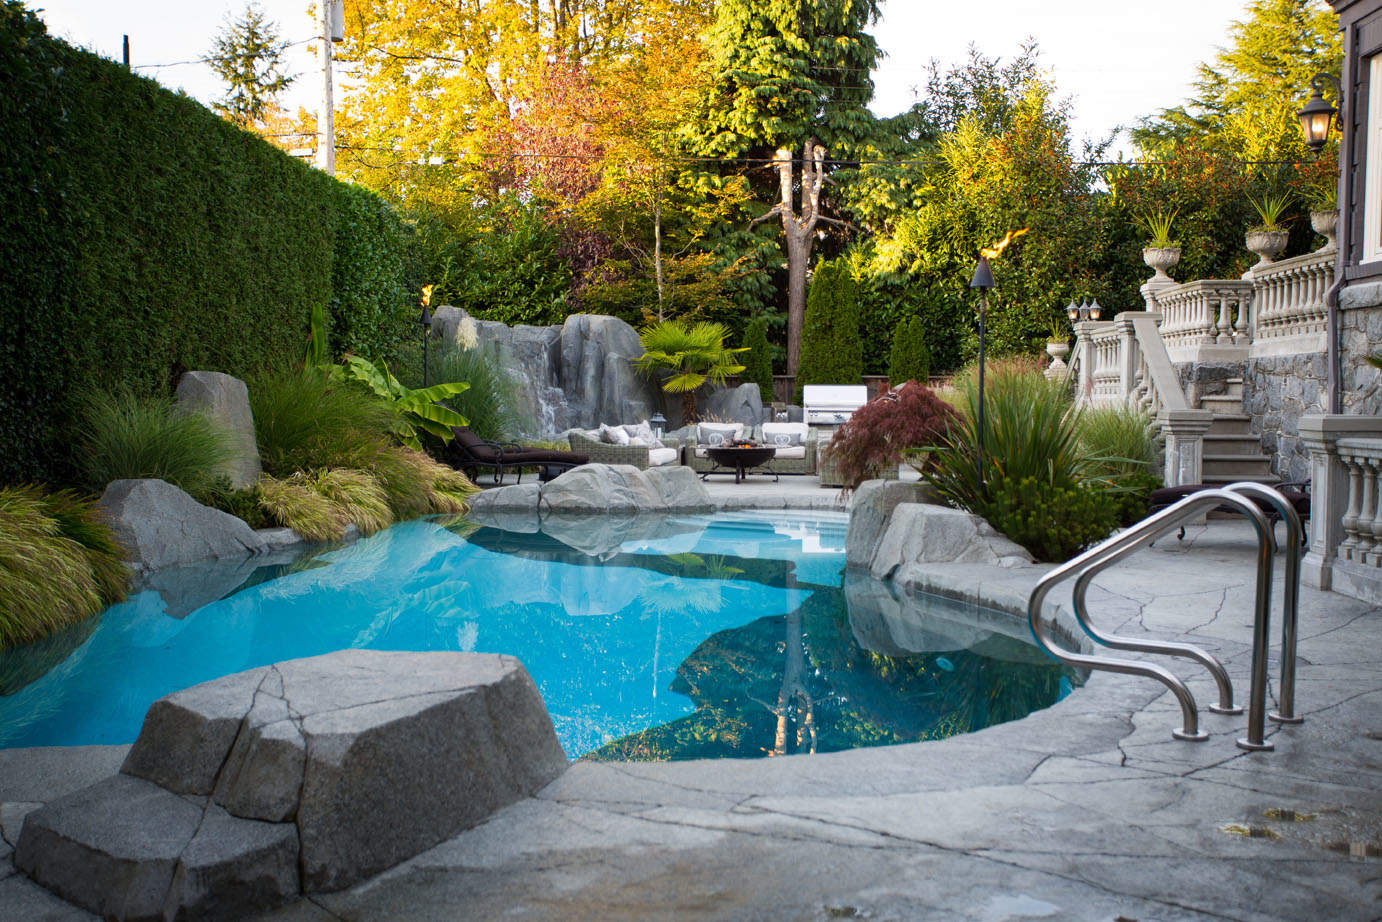 Backyard makeover with pool and concrete patio